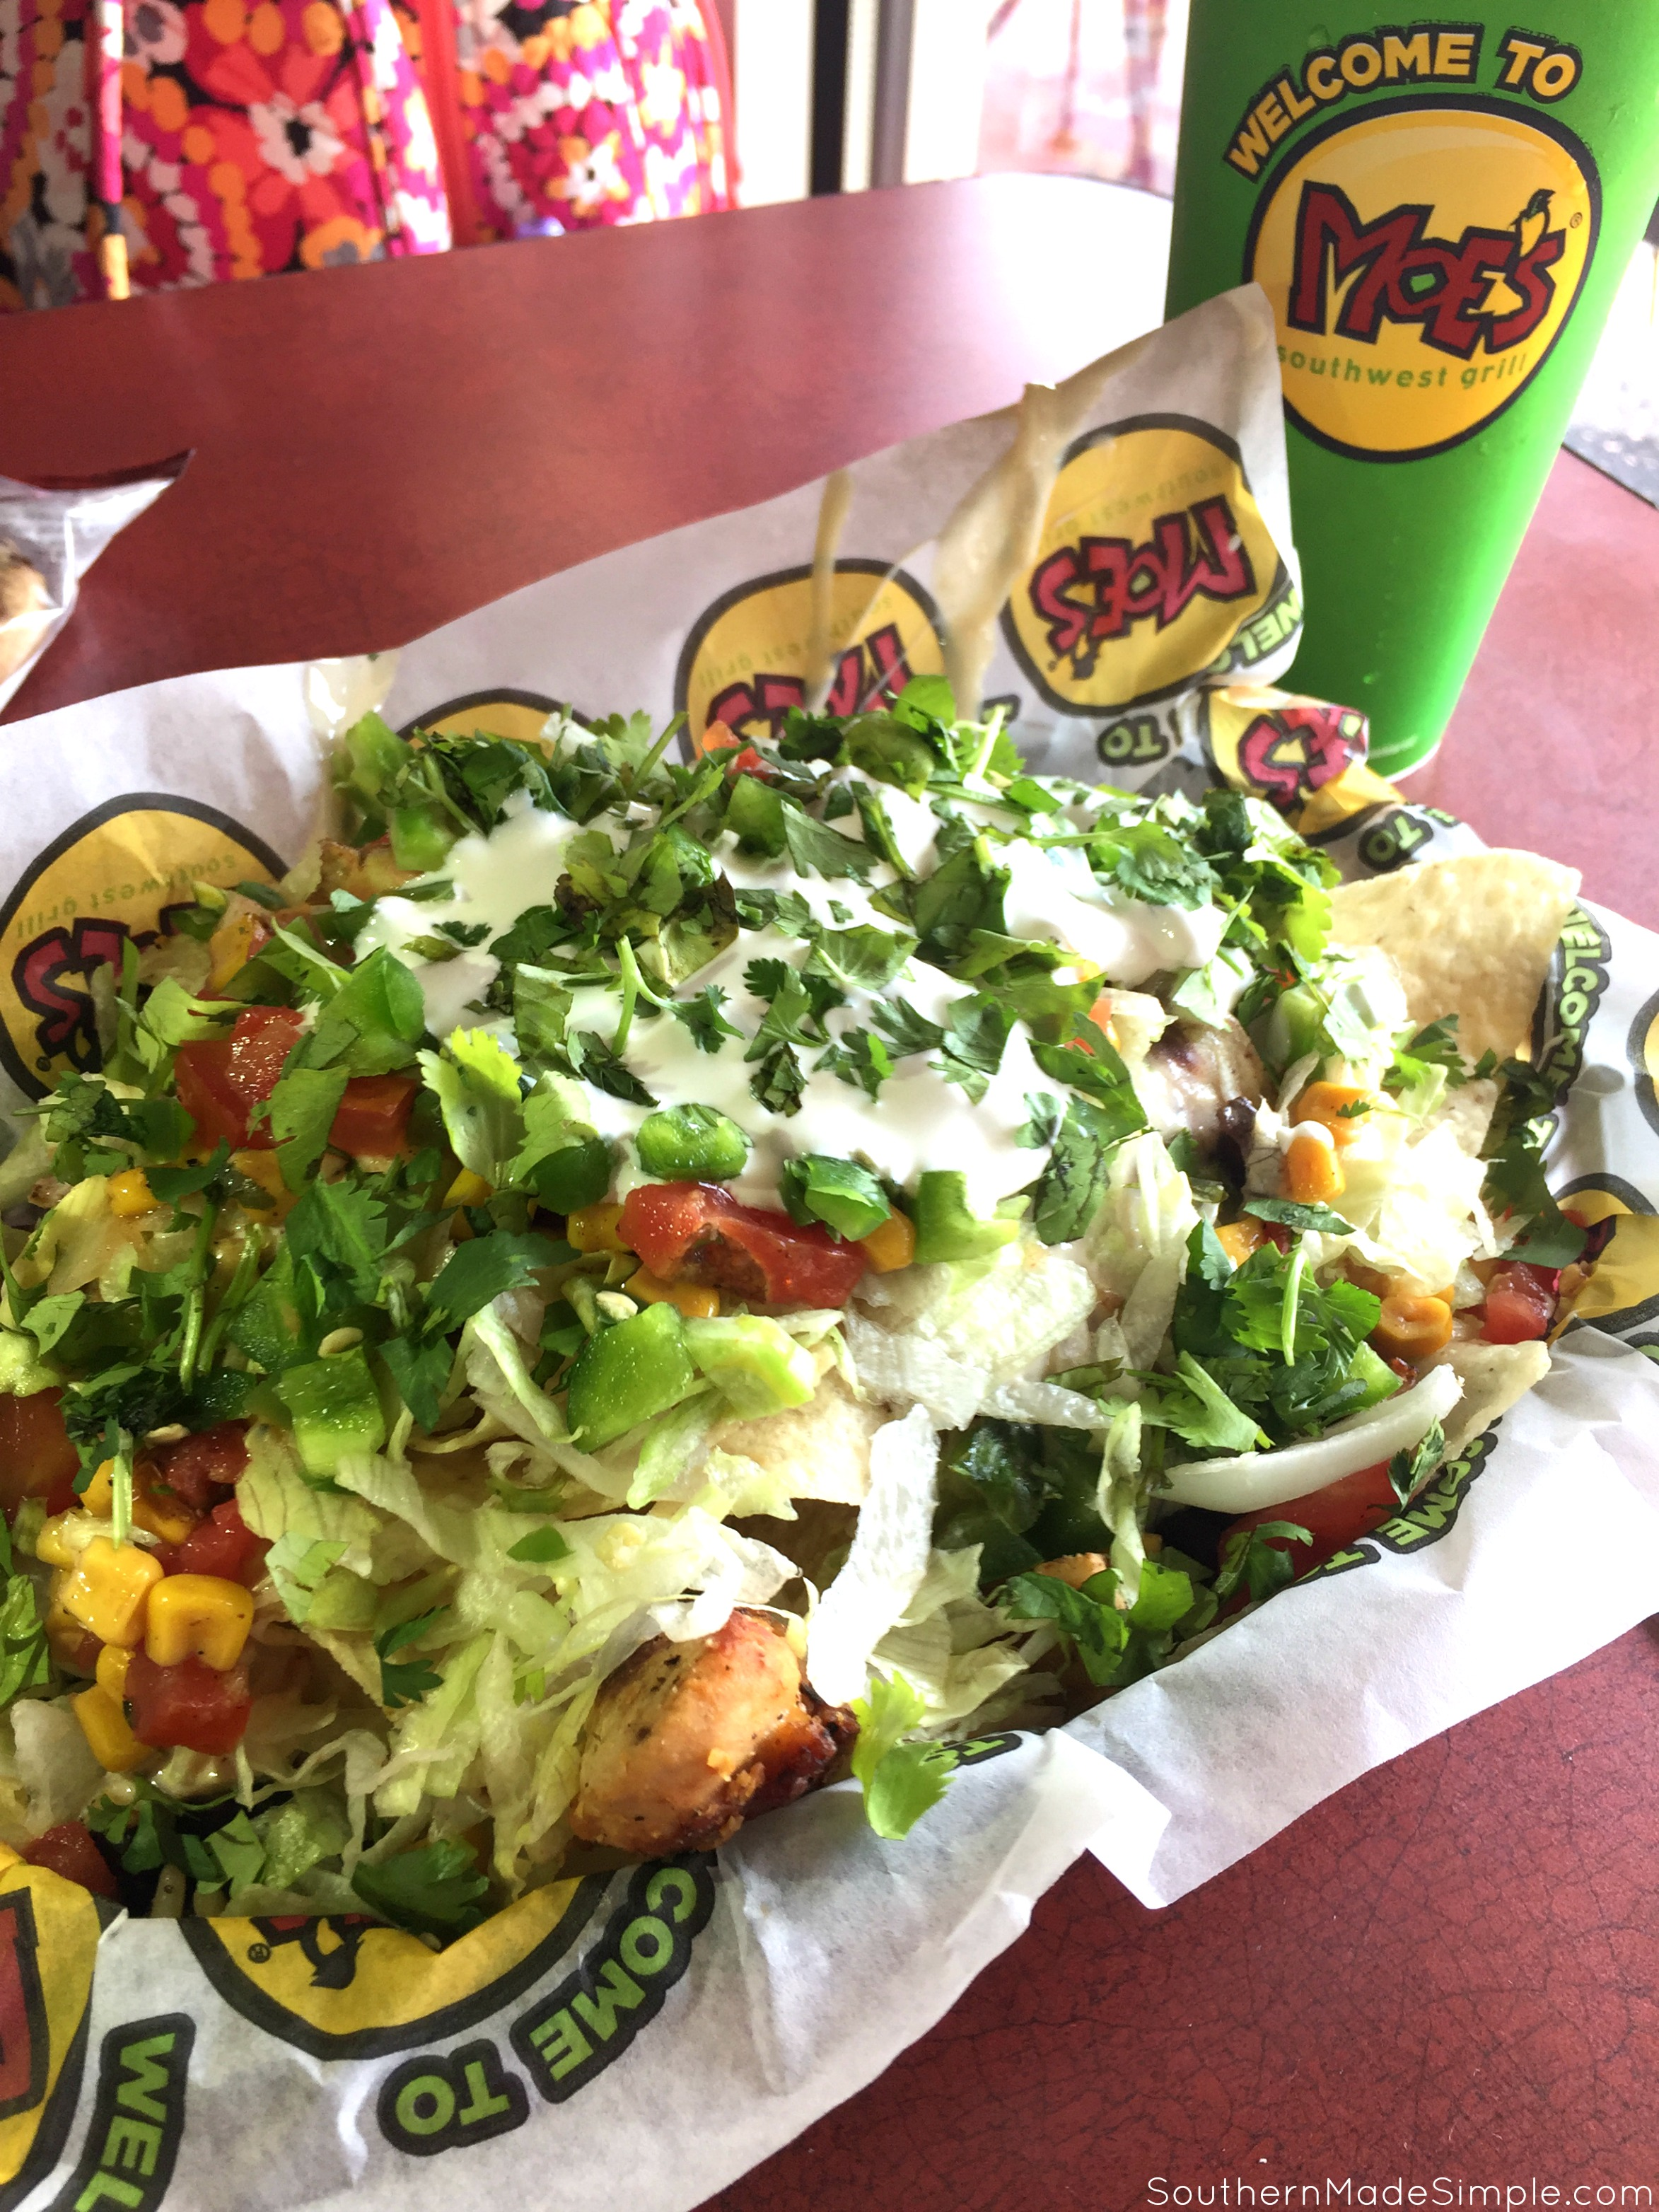 5 Reasons why Moe's Southwest Grill is my Family's Jam! #MadeAtMoes #ad